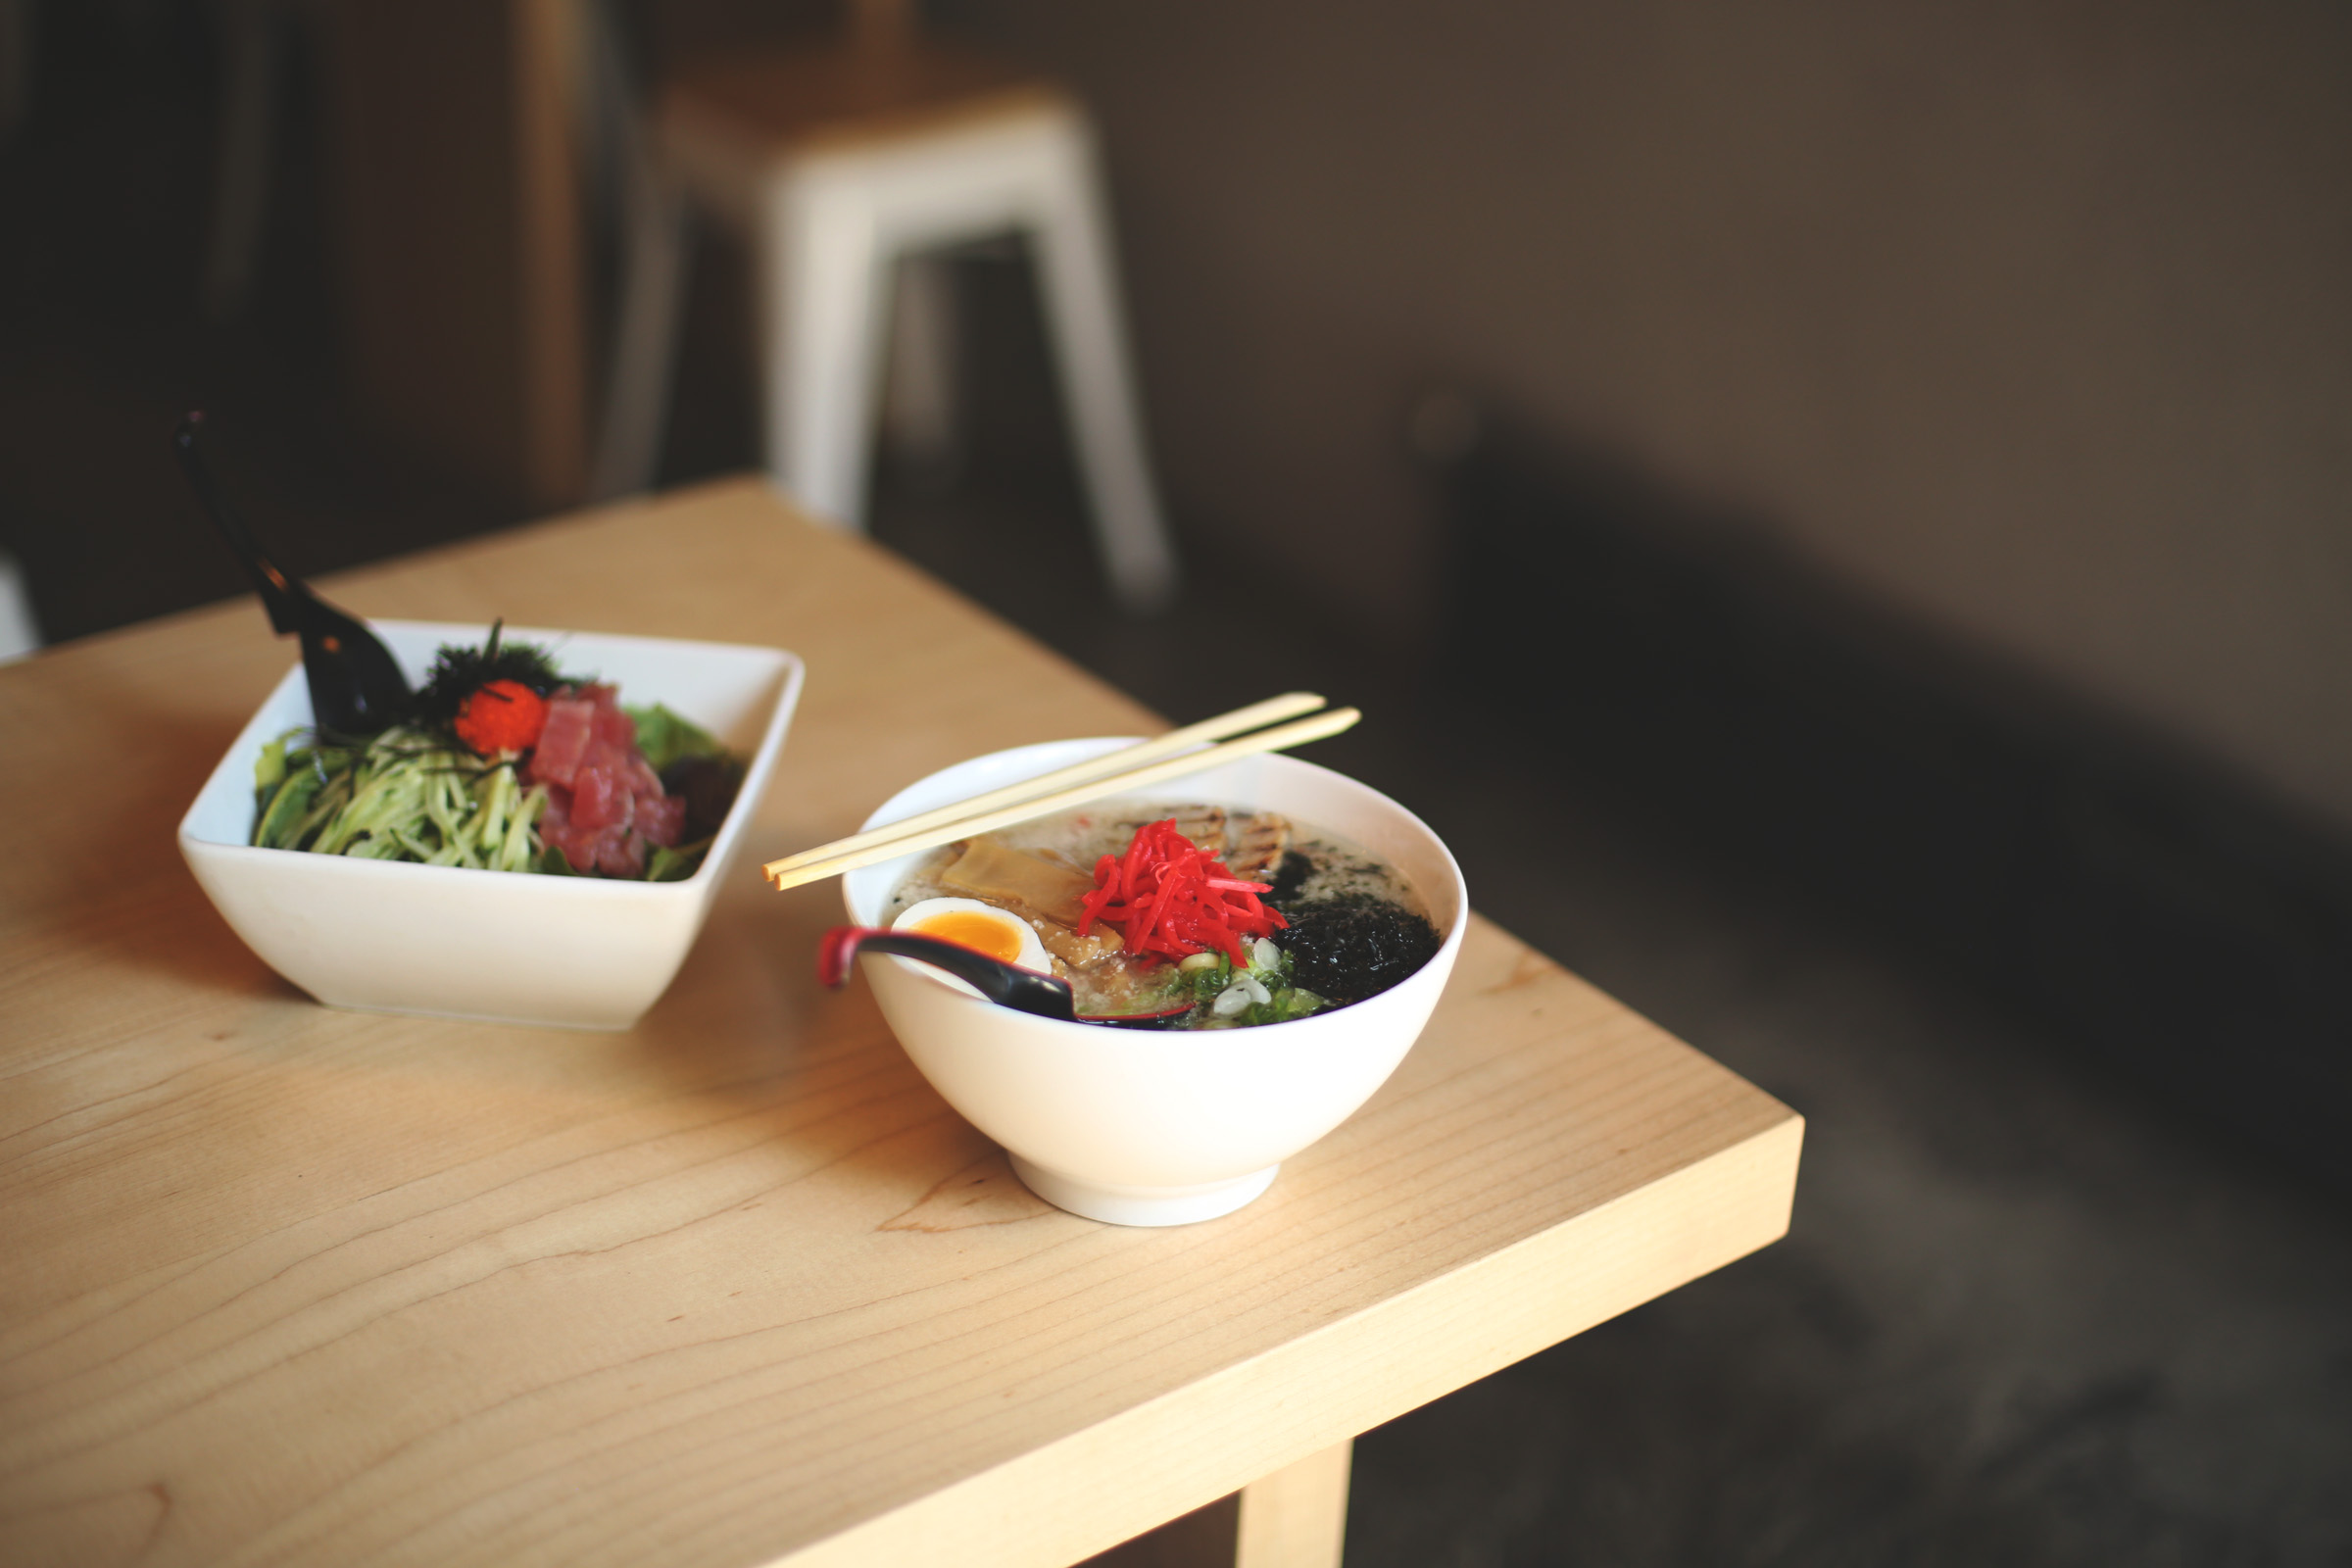 Spotted behind the ramen, you'll find their poke noodle bowl, with freshly diced tuna, fish roe, cold noodles, and even more deliciousness.